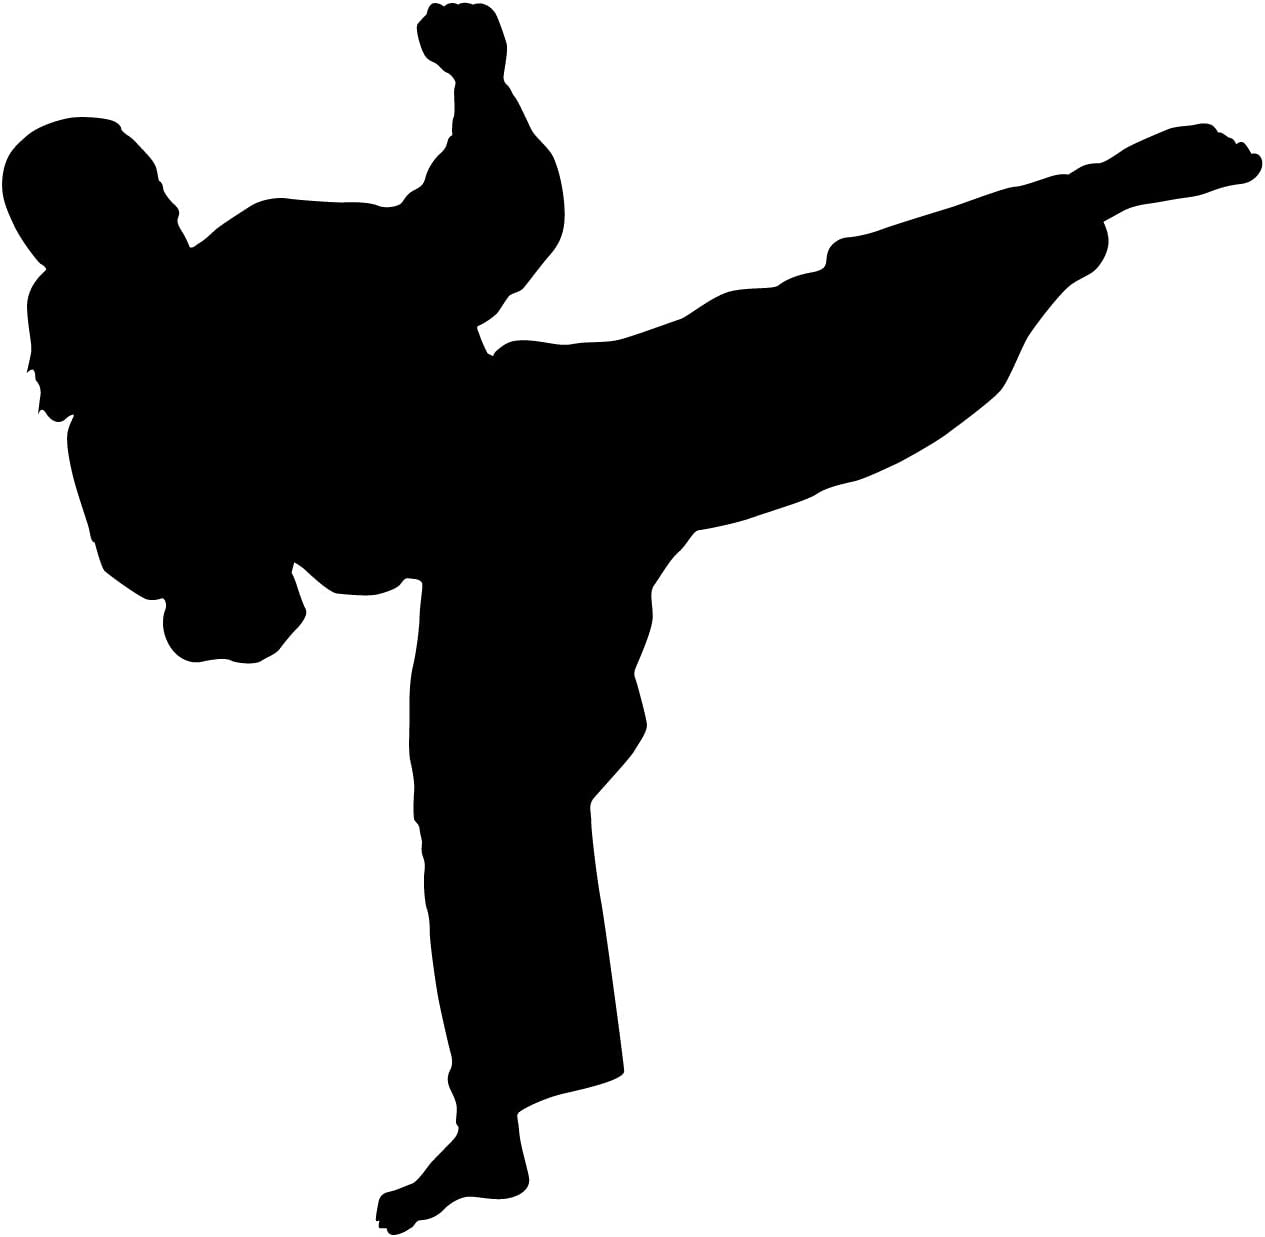 Martial Arts Wall Decal Sticker 30 - Decal Stickers and Mural for Kids Boys Girls Room and Bedroom. Karate Sport Wall Art for Home Decor and Decoration - Martial Art Kung Fu Taekwondo Silhouette Mural